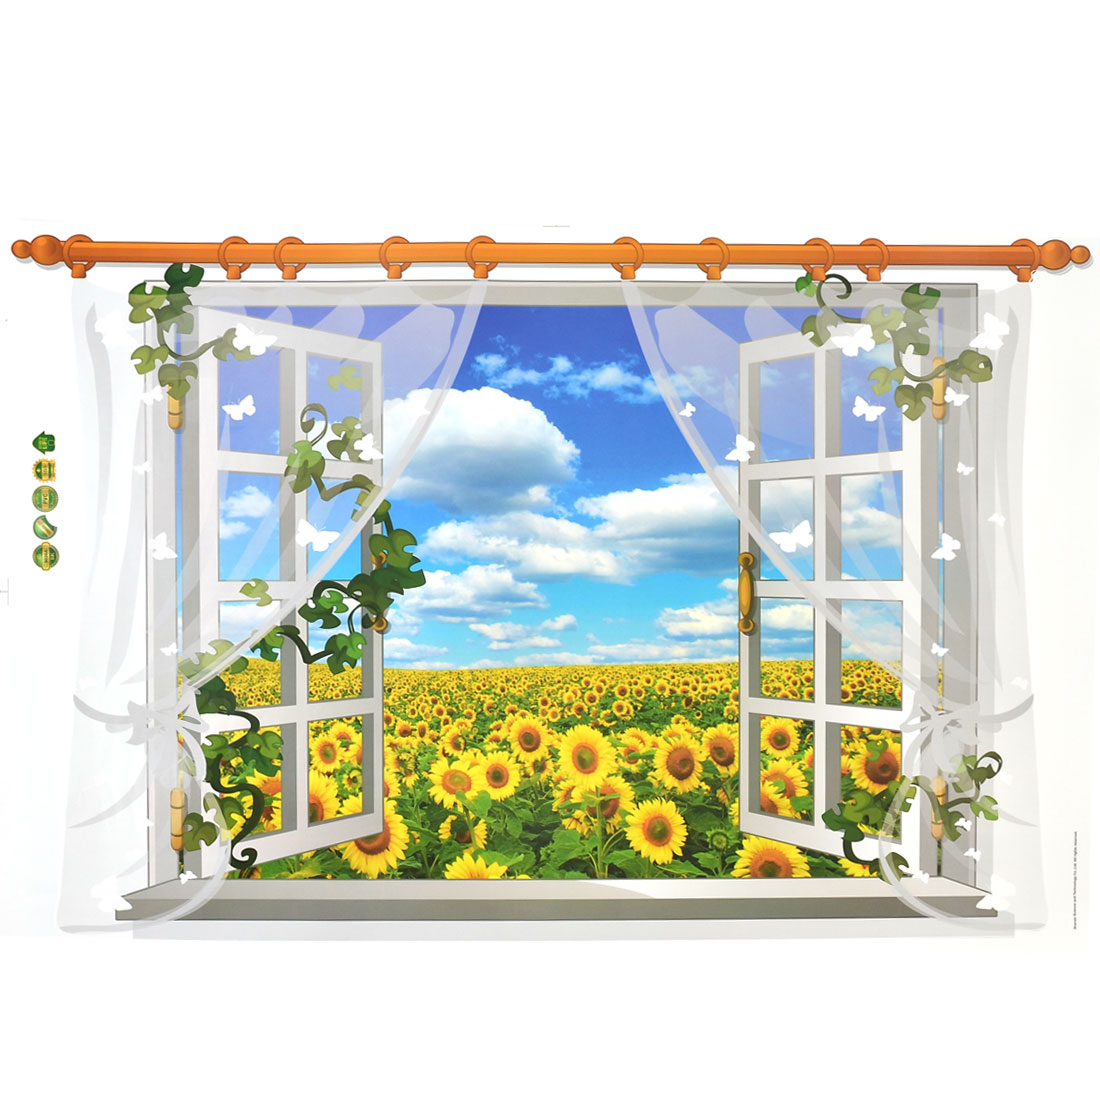 Living Room PVC Sunflowers Print DIY Ornament Wall Sticker Decal Mural 60 x 90cm